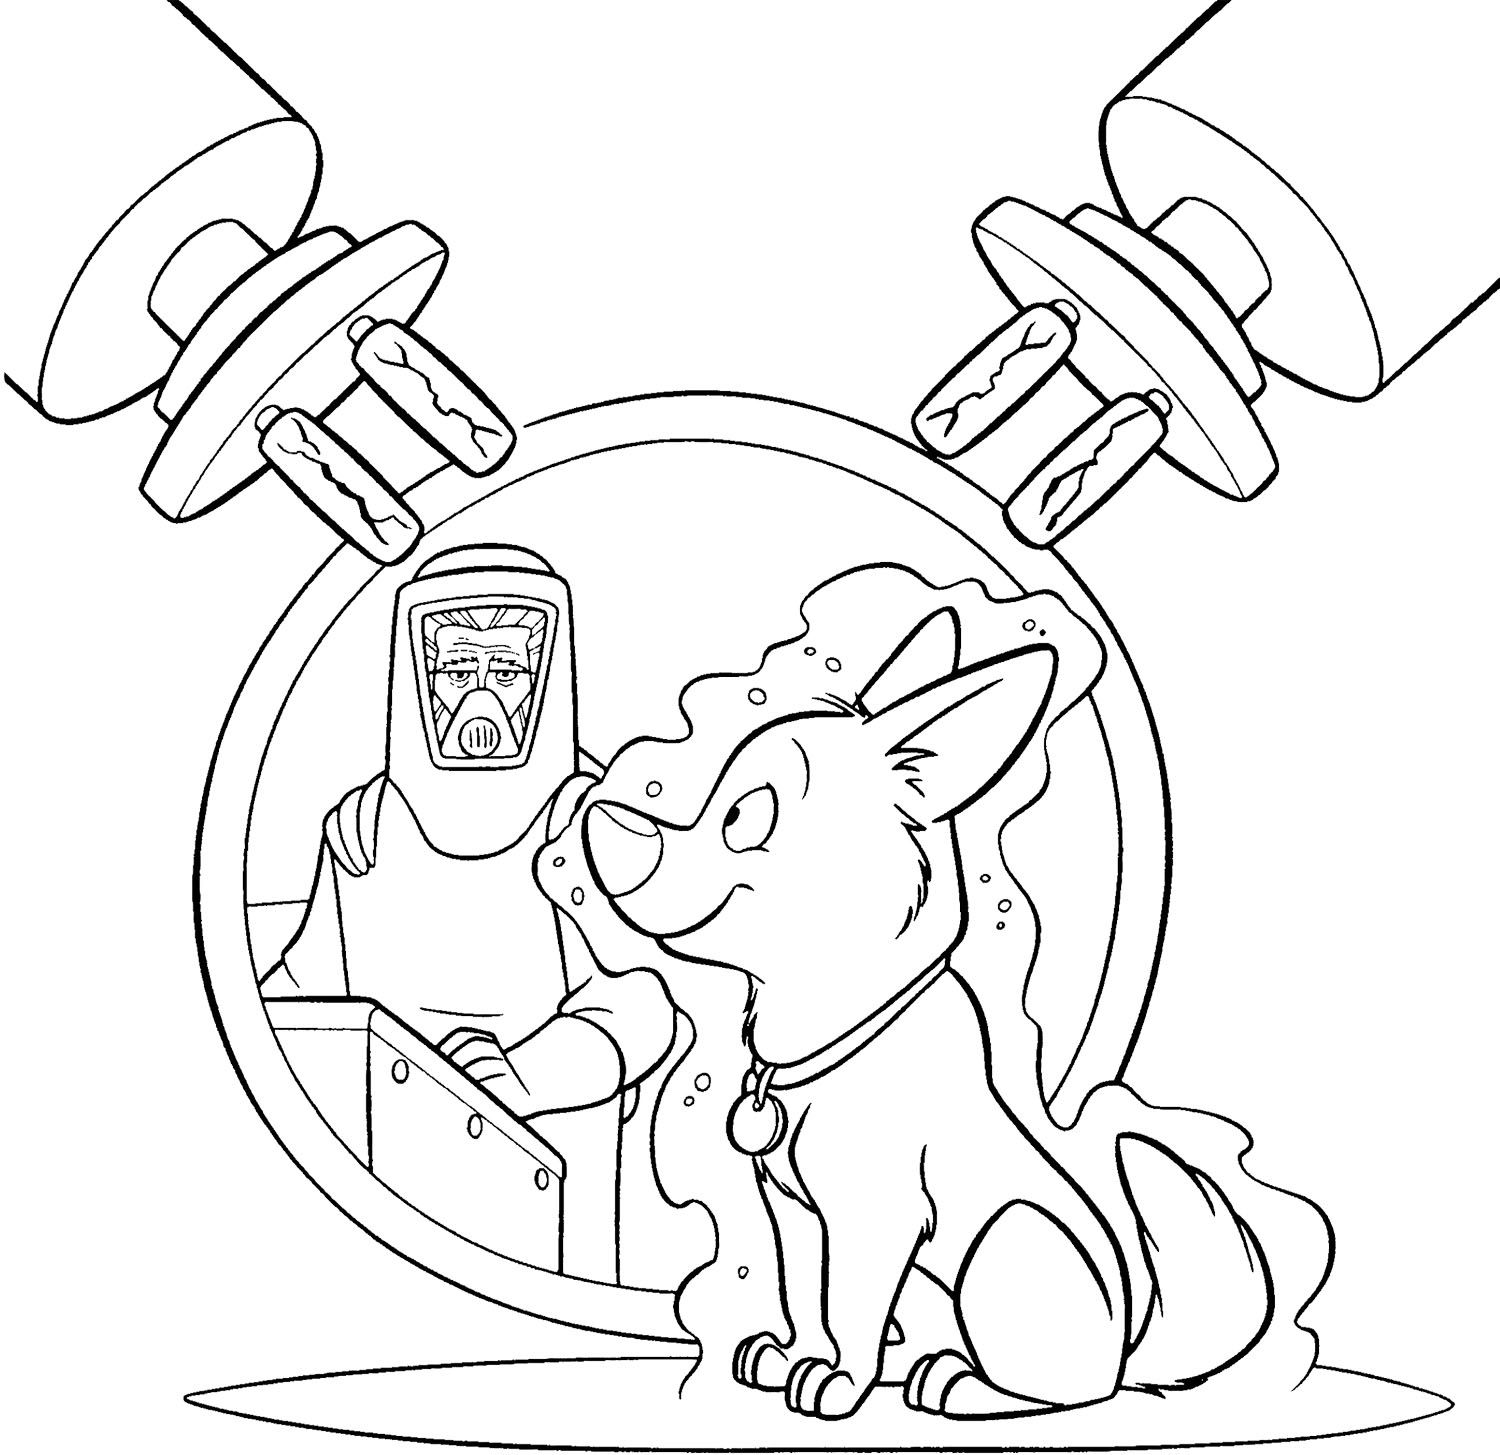 Bolt Experiment Coloring Page | Coloring pages | Pinterest